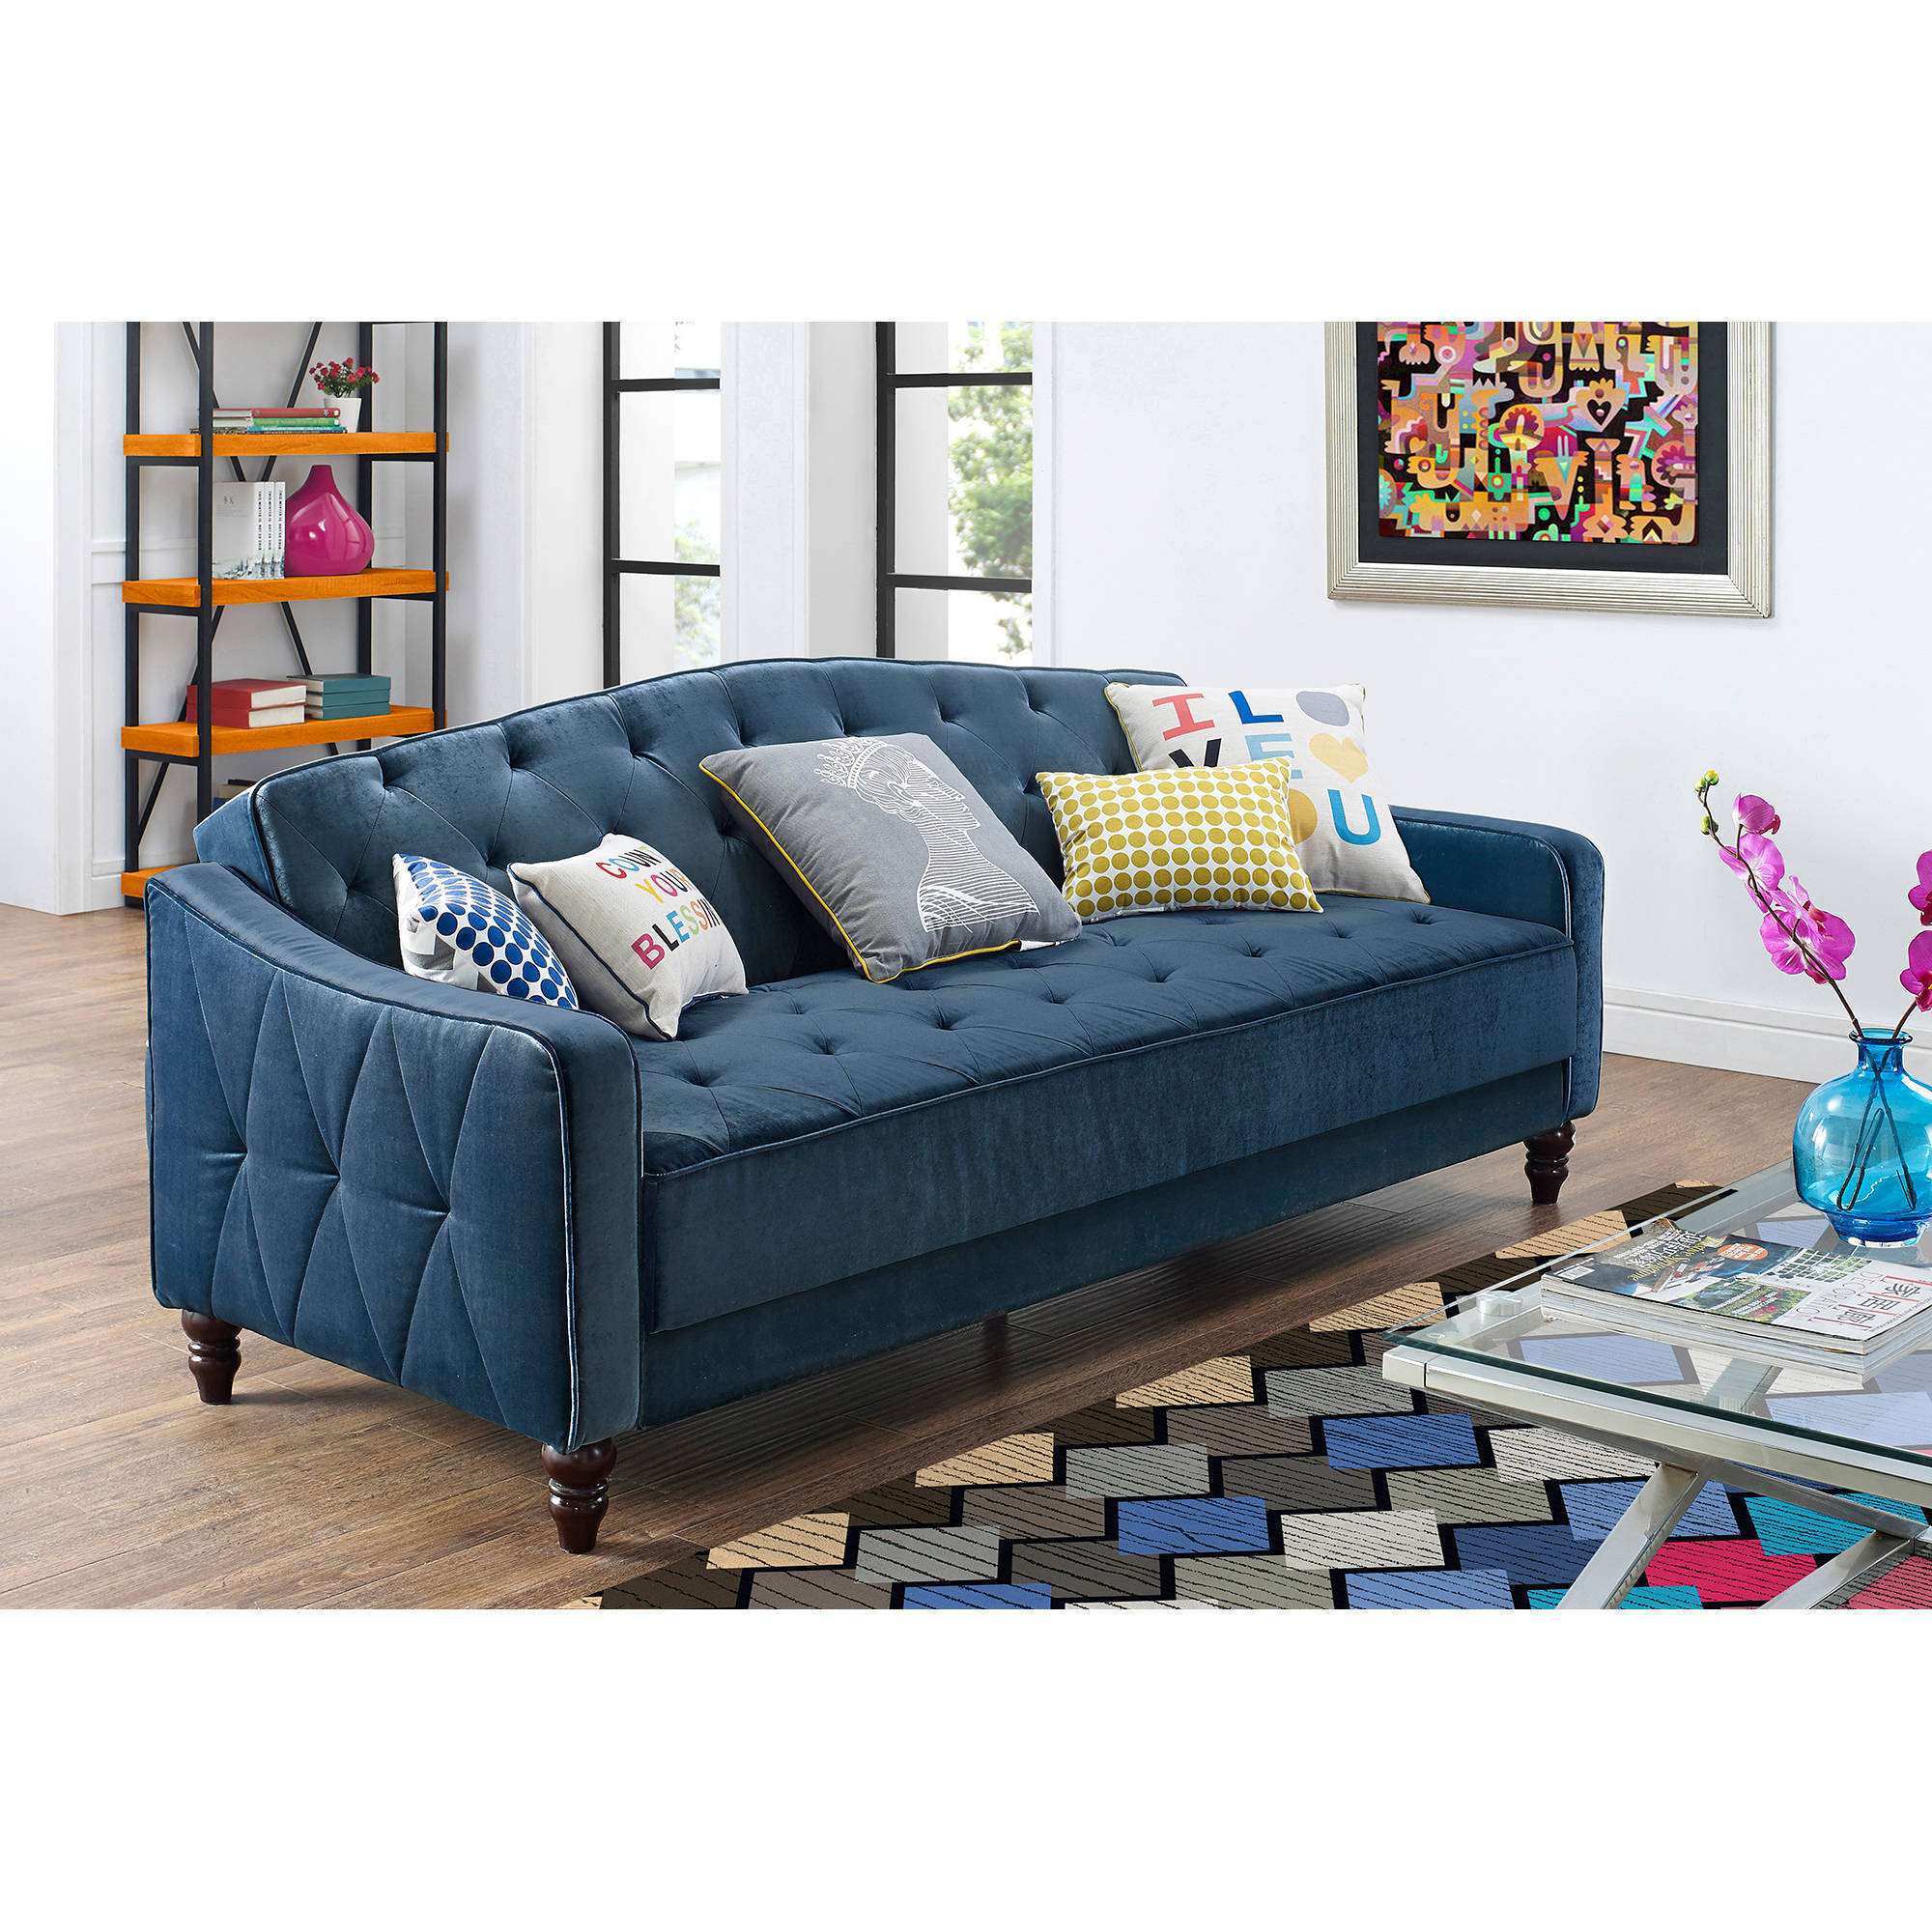 ... 3 Piece Living Room Set, Multiple Colors. Walmart #: 3O3X572PK0WL.  Bundle Includes. Novogratz Vintage Tufted Sofa Sleeper II, Multiple Colors